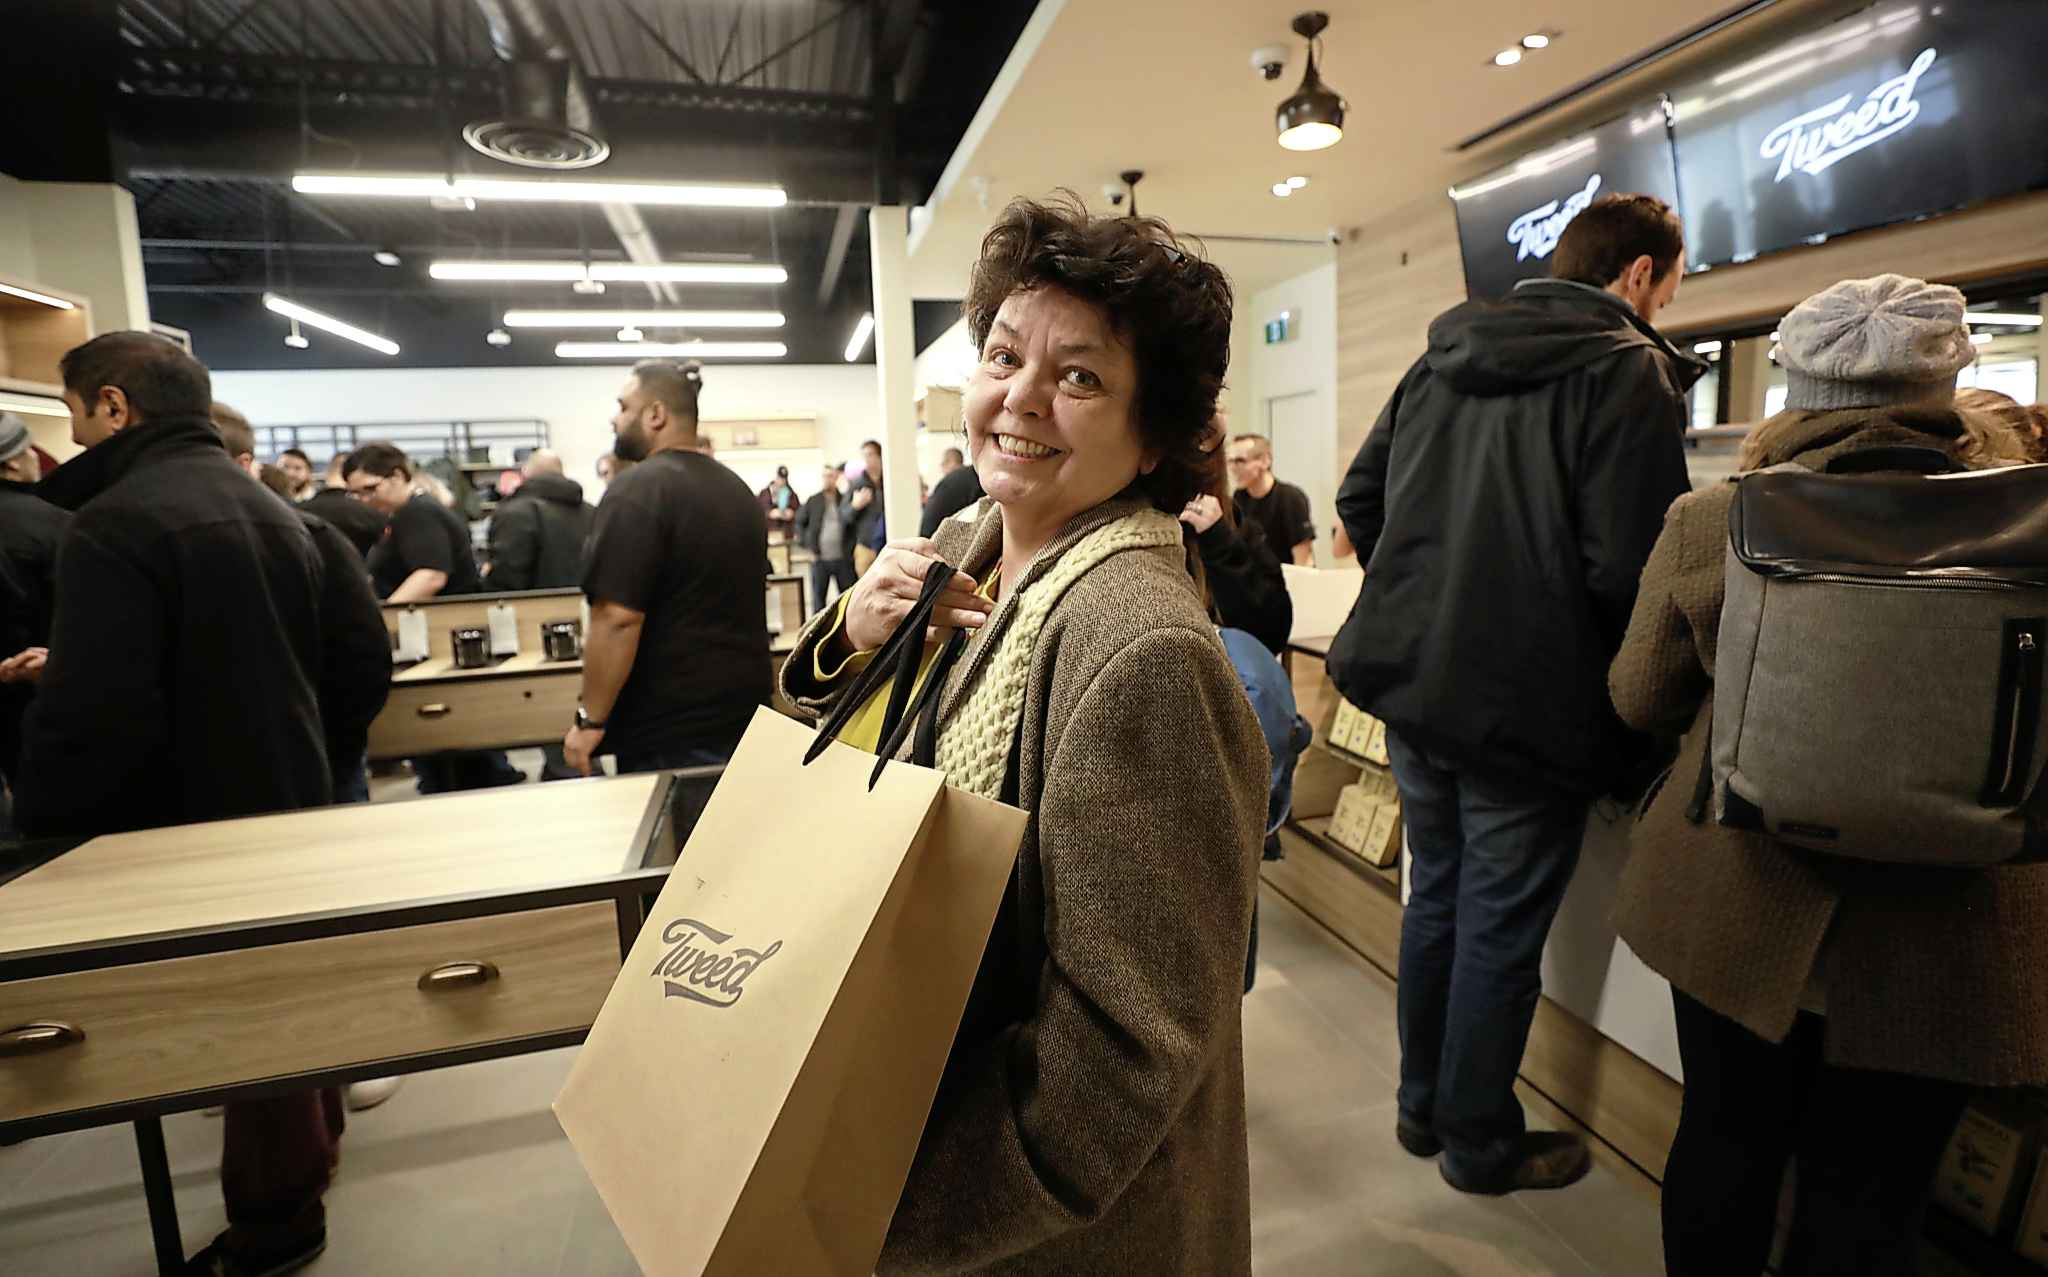 Susan Gibson finishes making her purchase of cannabis at Tweed store Wednesday.